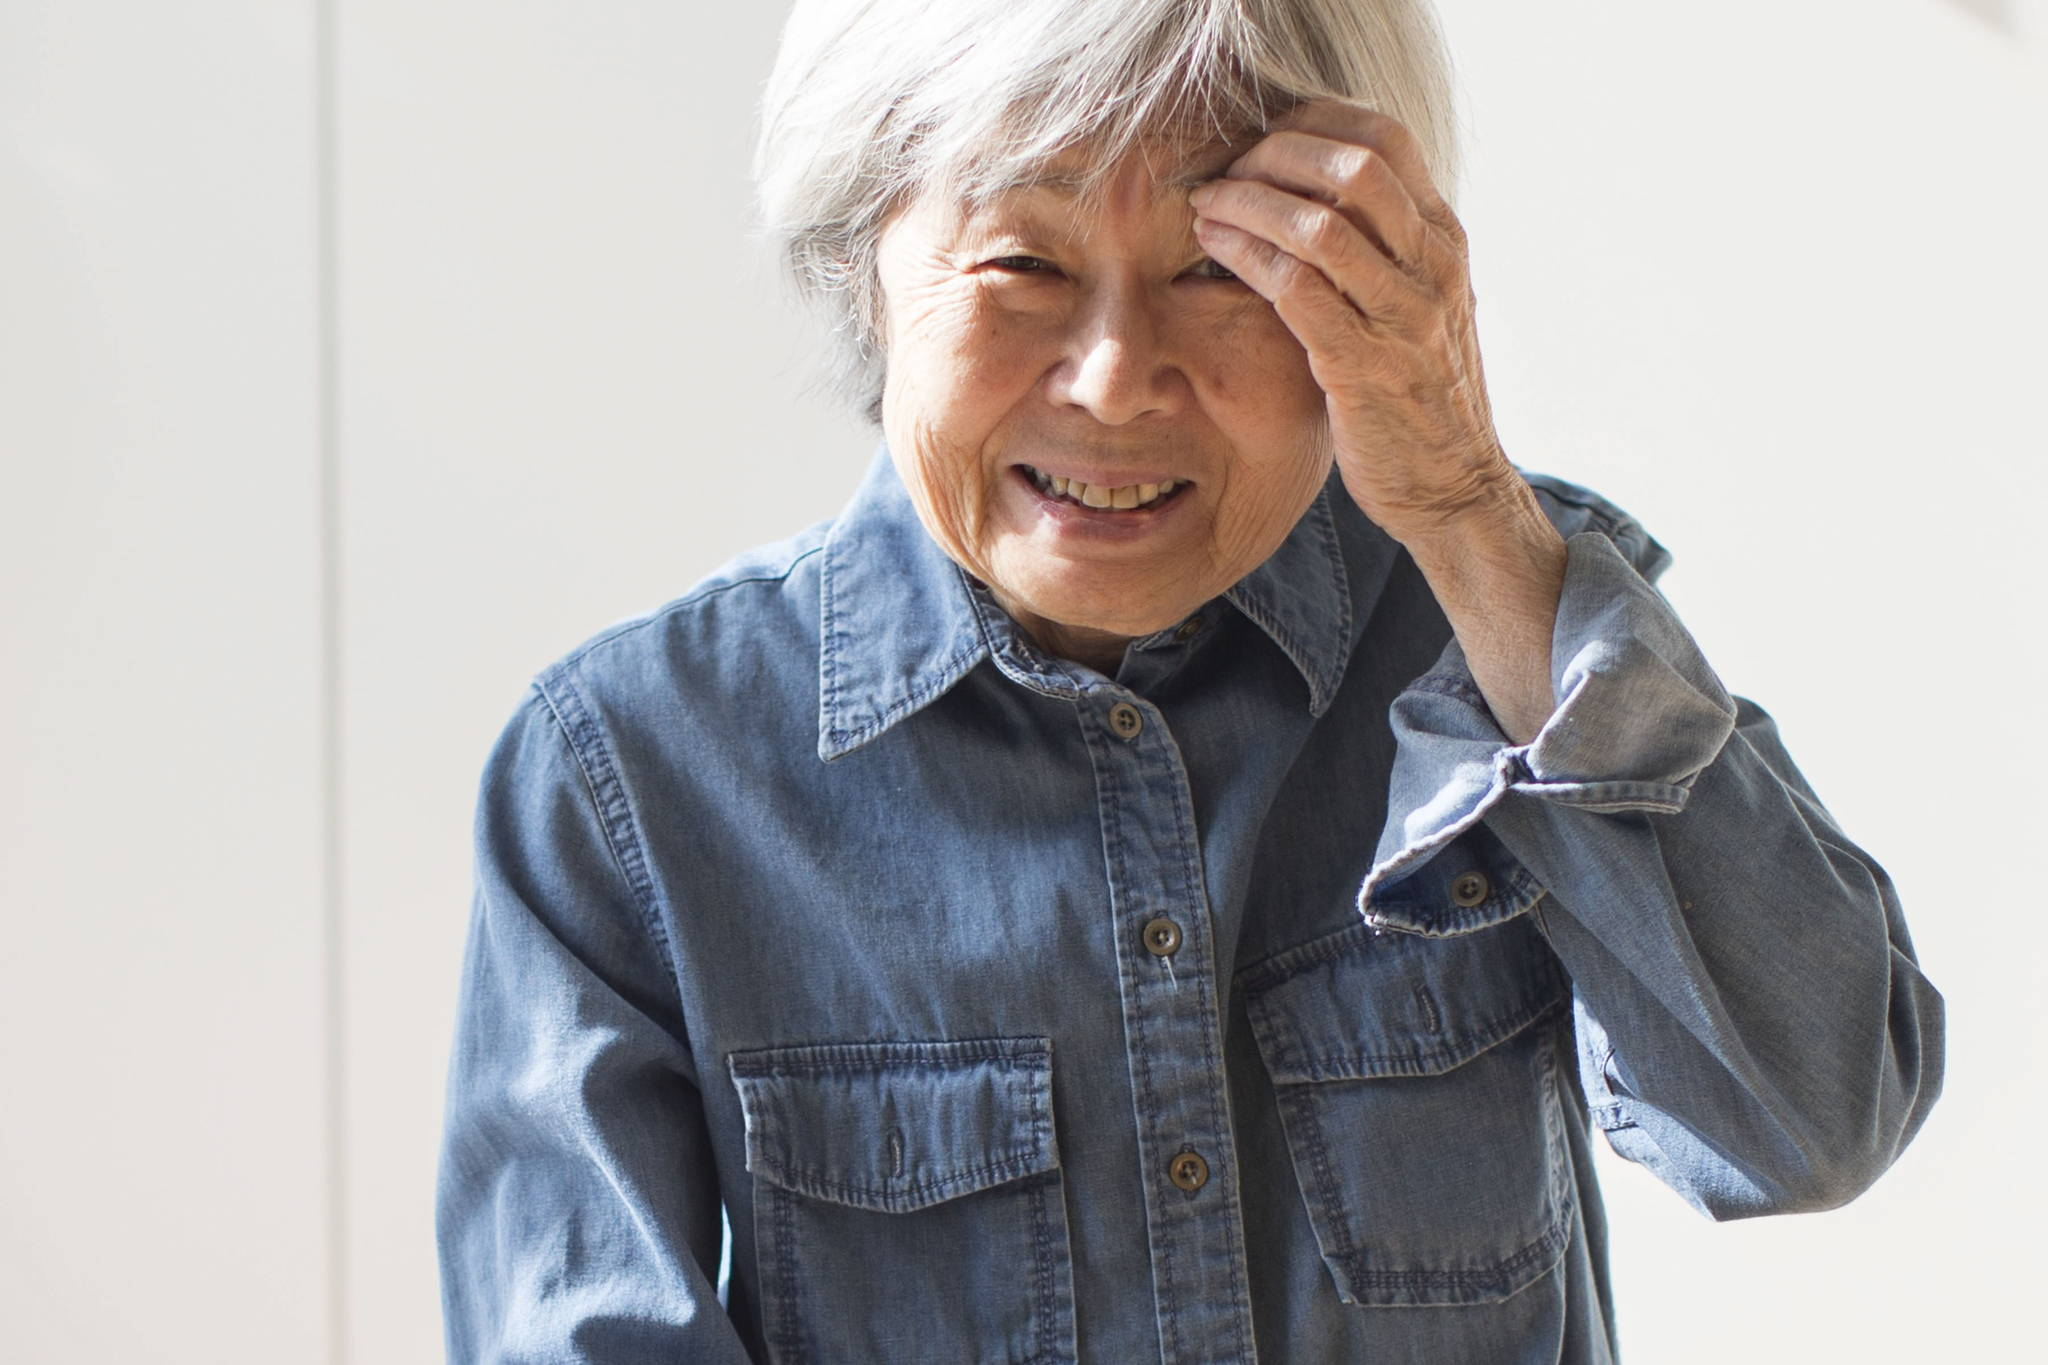 """Writer Joy Kogawa is photographed in her Toronto home on Friday, February 22, 2019. Kogawa is giddy about the """"miracle"""" of technology allowing people to learn about Canada's racist past that forced thousands of citizens like her out of their homes and into internment camps during the Second World War. THE CANADIAN PRESS/Chris Young"""